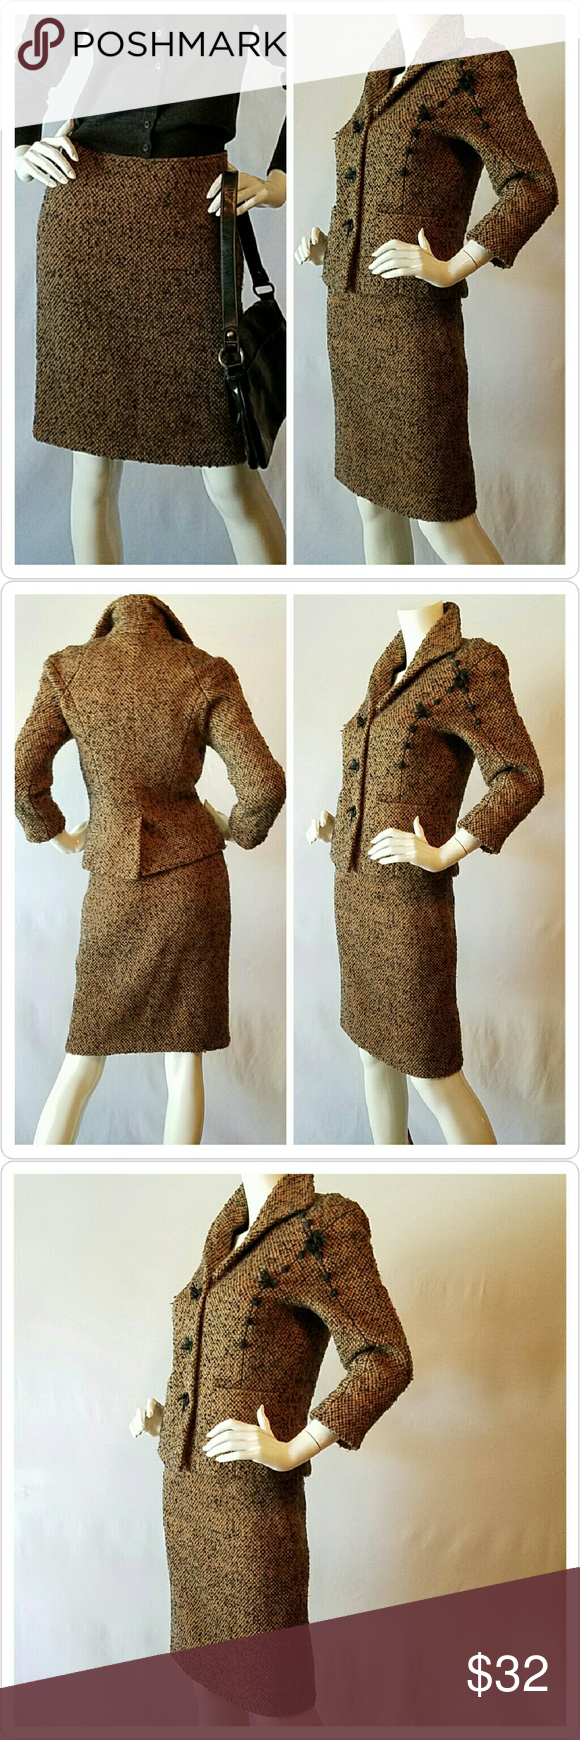 """Max Studio Pencil Skirt MAX STUDIO """"Special Collection"""" boucle pencil skirt. Jacket is also available for purchase. Fully lined.  Both were part of limited collection. Excellent condition. Amazing fit and construction.   Approx 21inches long, waist 14inches measured flat, hips 18inches measured flat. Max Studio Skirts Midi"""